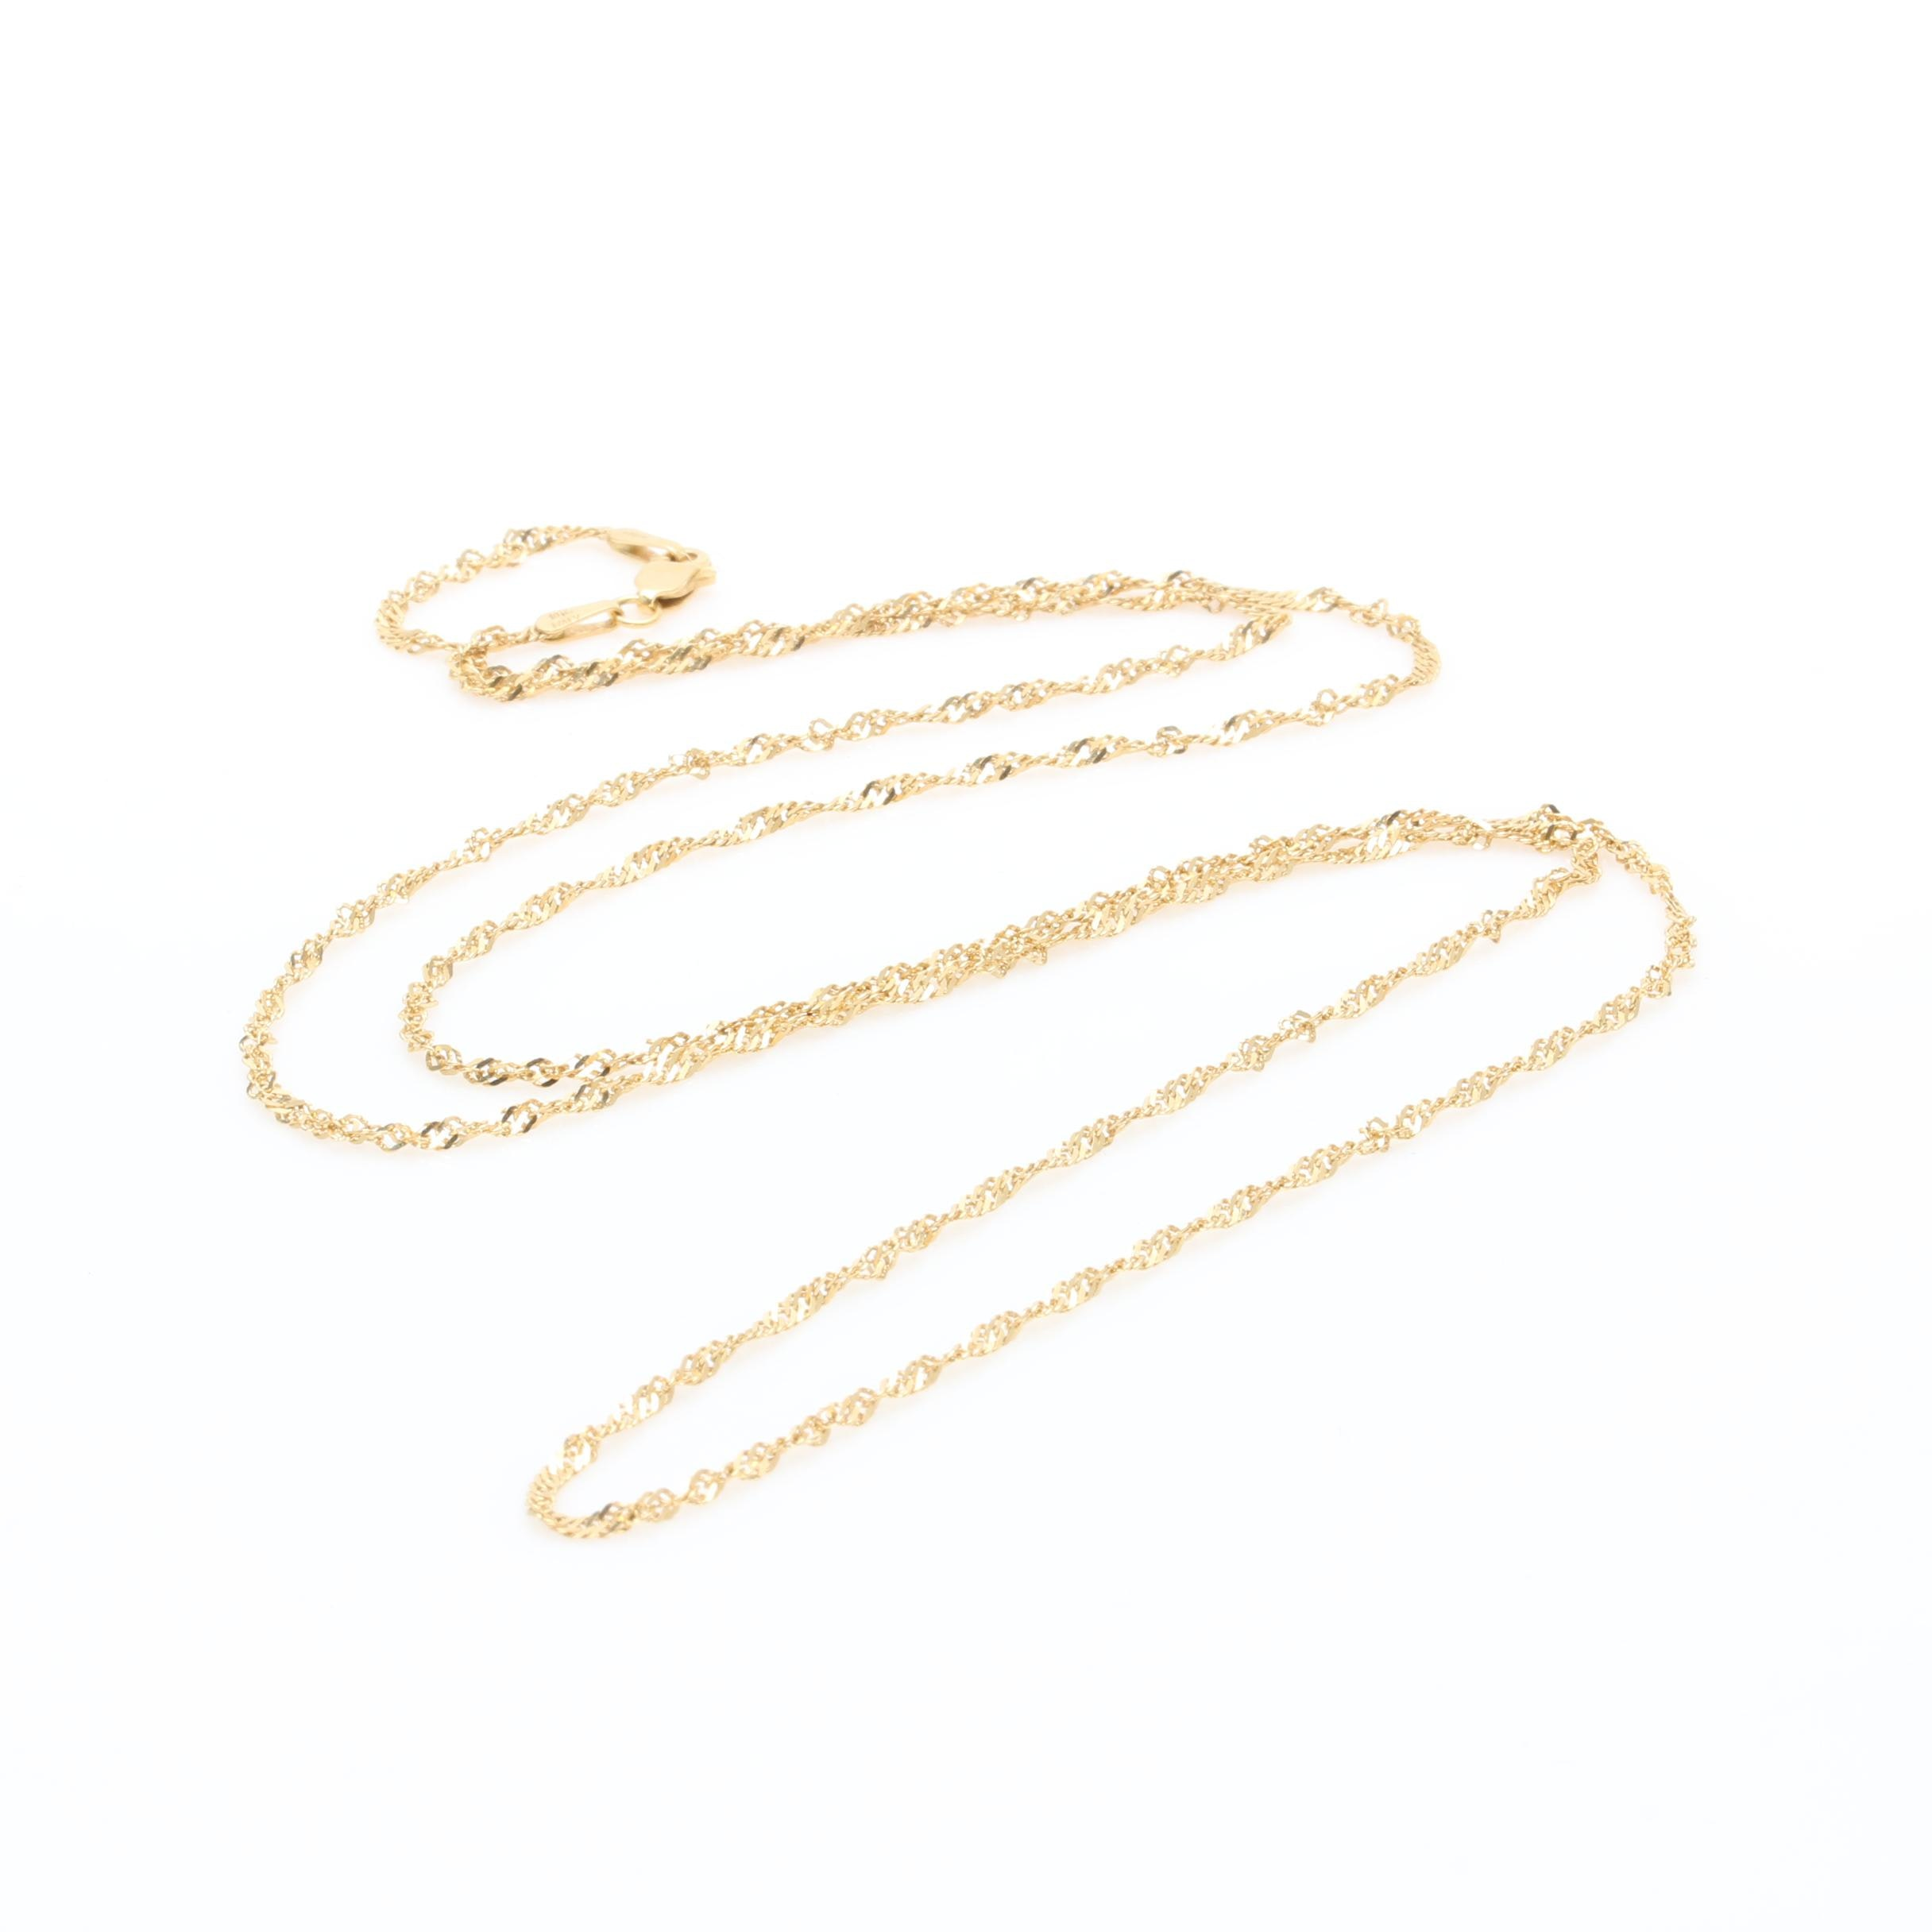 18K Yellow Gold Diamond Cut Rope Chain